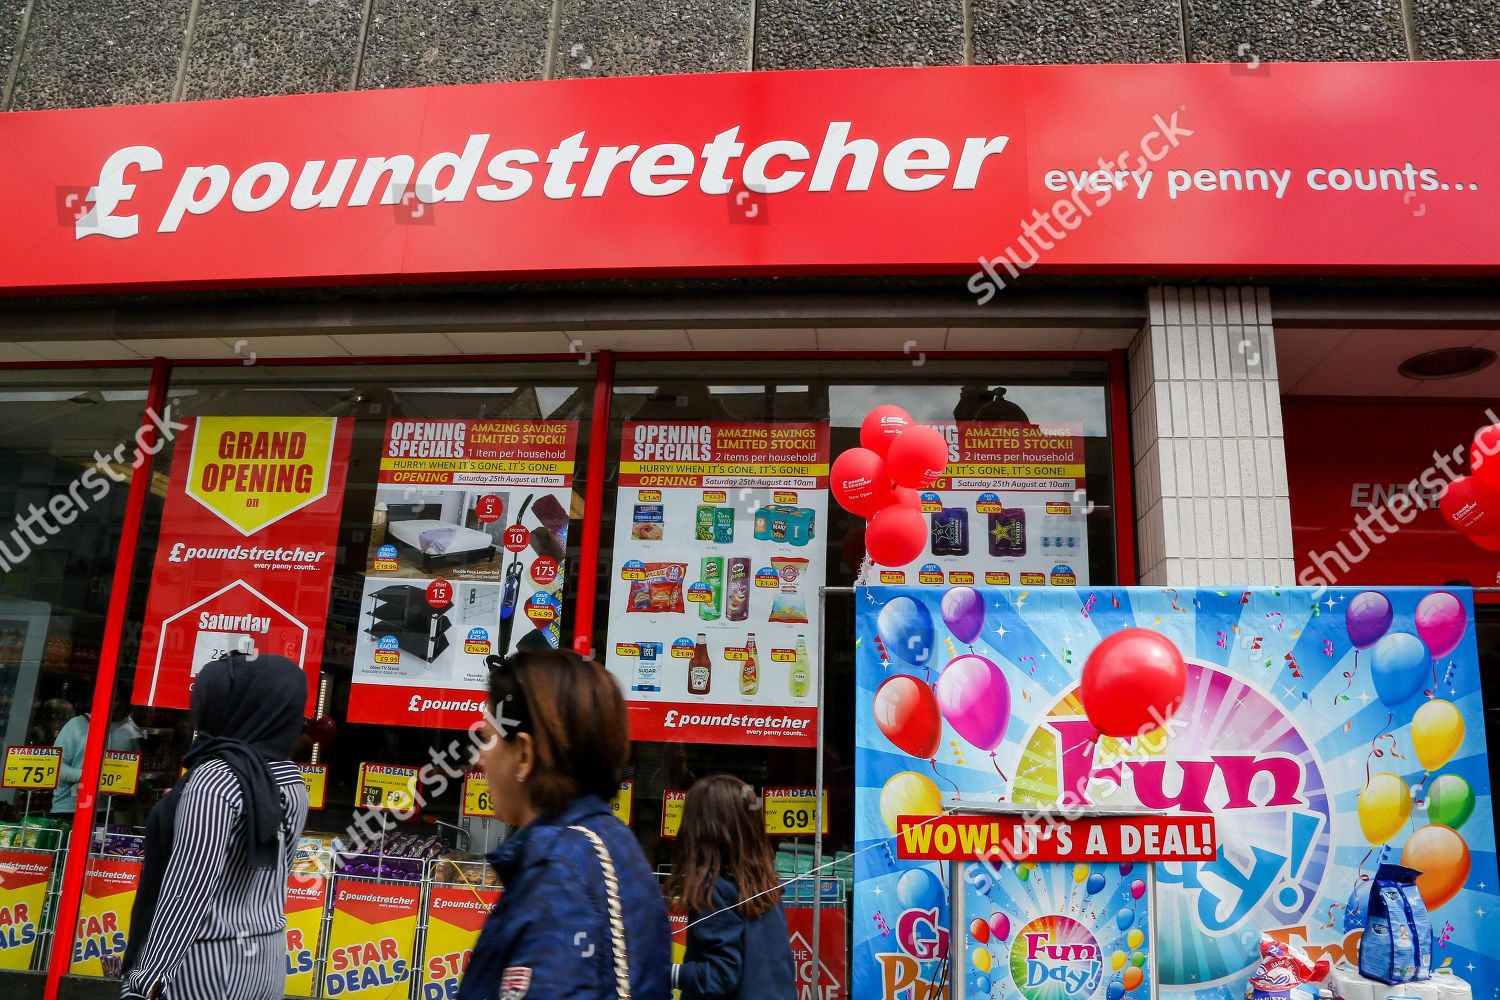 New Branch Discount Chain Poundstretcher Opens Wood